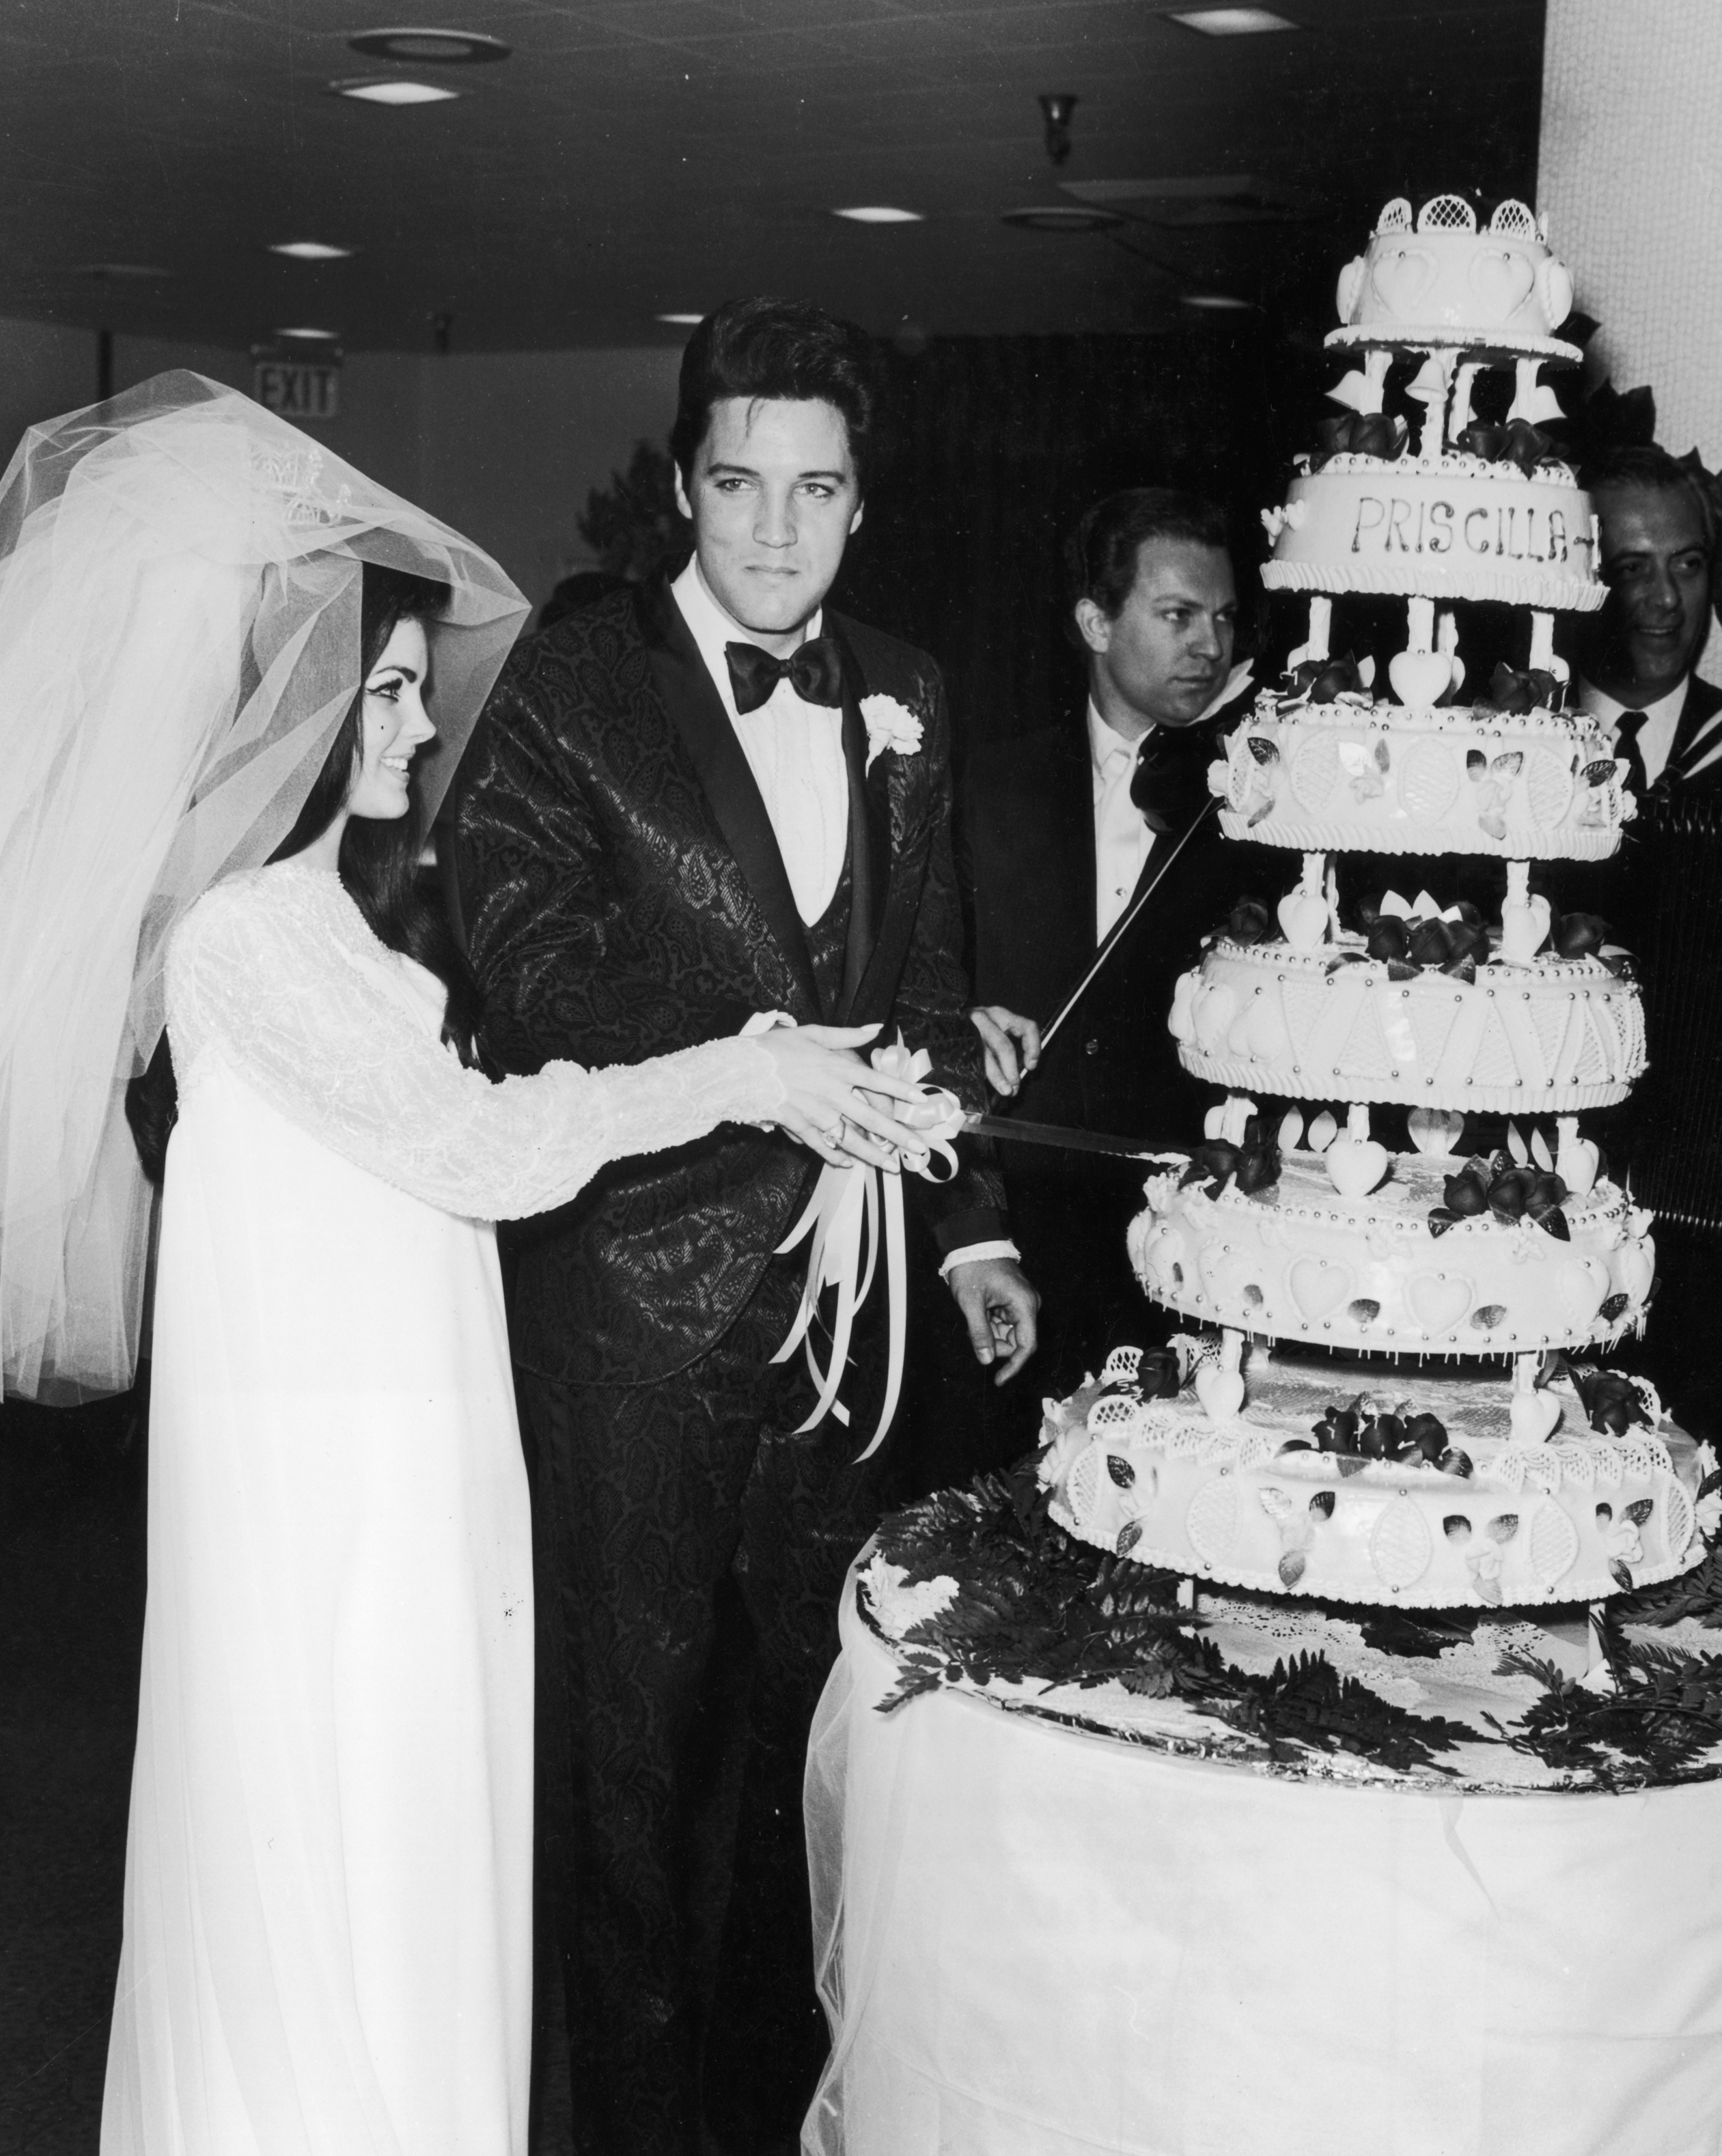 celebrity-vintage-wedding-cakes-elvis-presley-3201381-1015.jpg